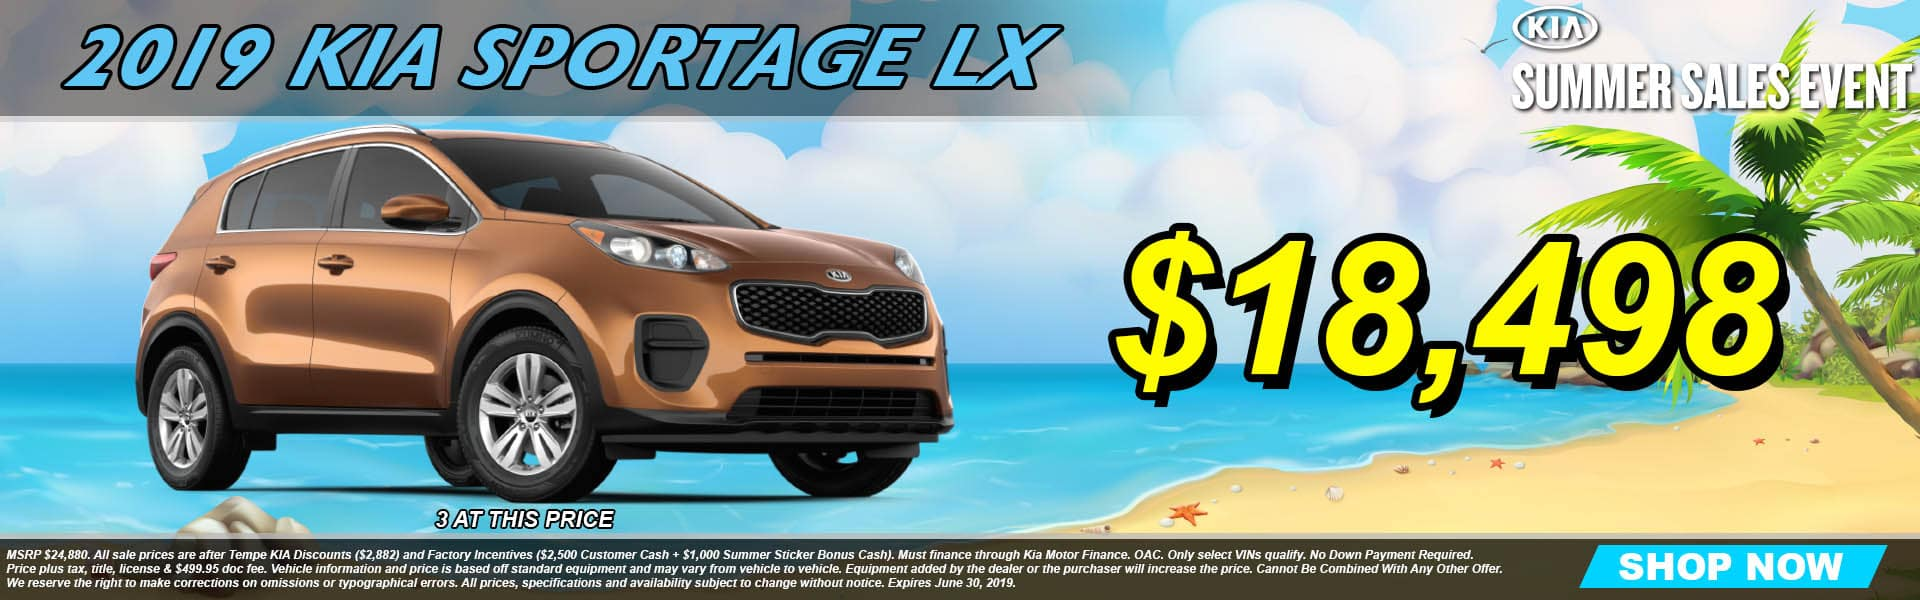 2019 Kia Sportage Slide Summer Sales Event